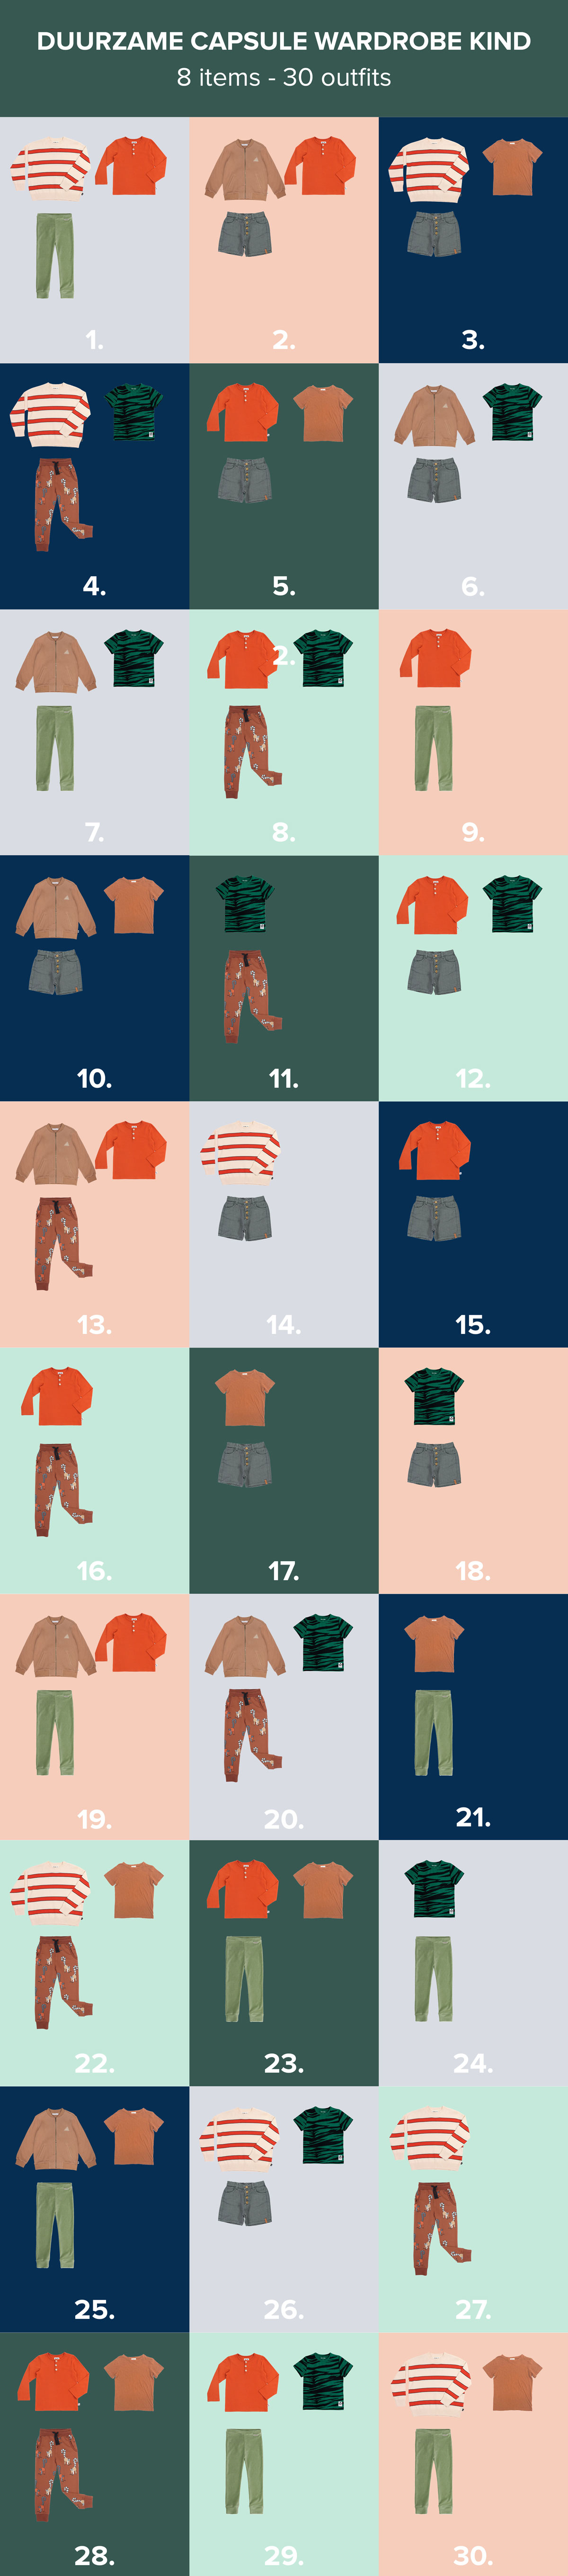 capsule-wardrobe-kind-8-kledingstukken-30-combinaties